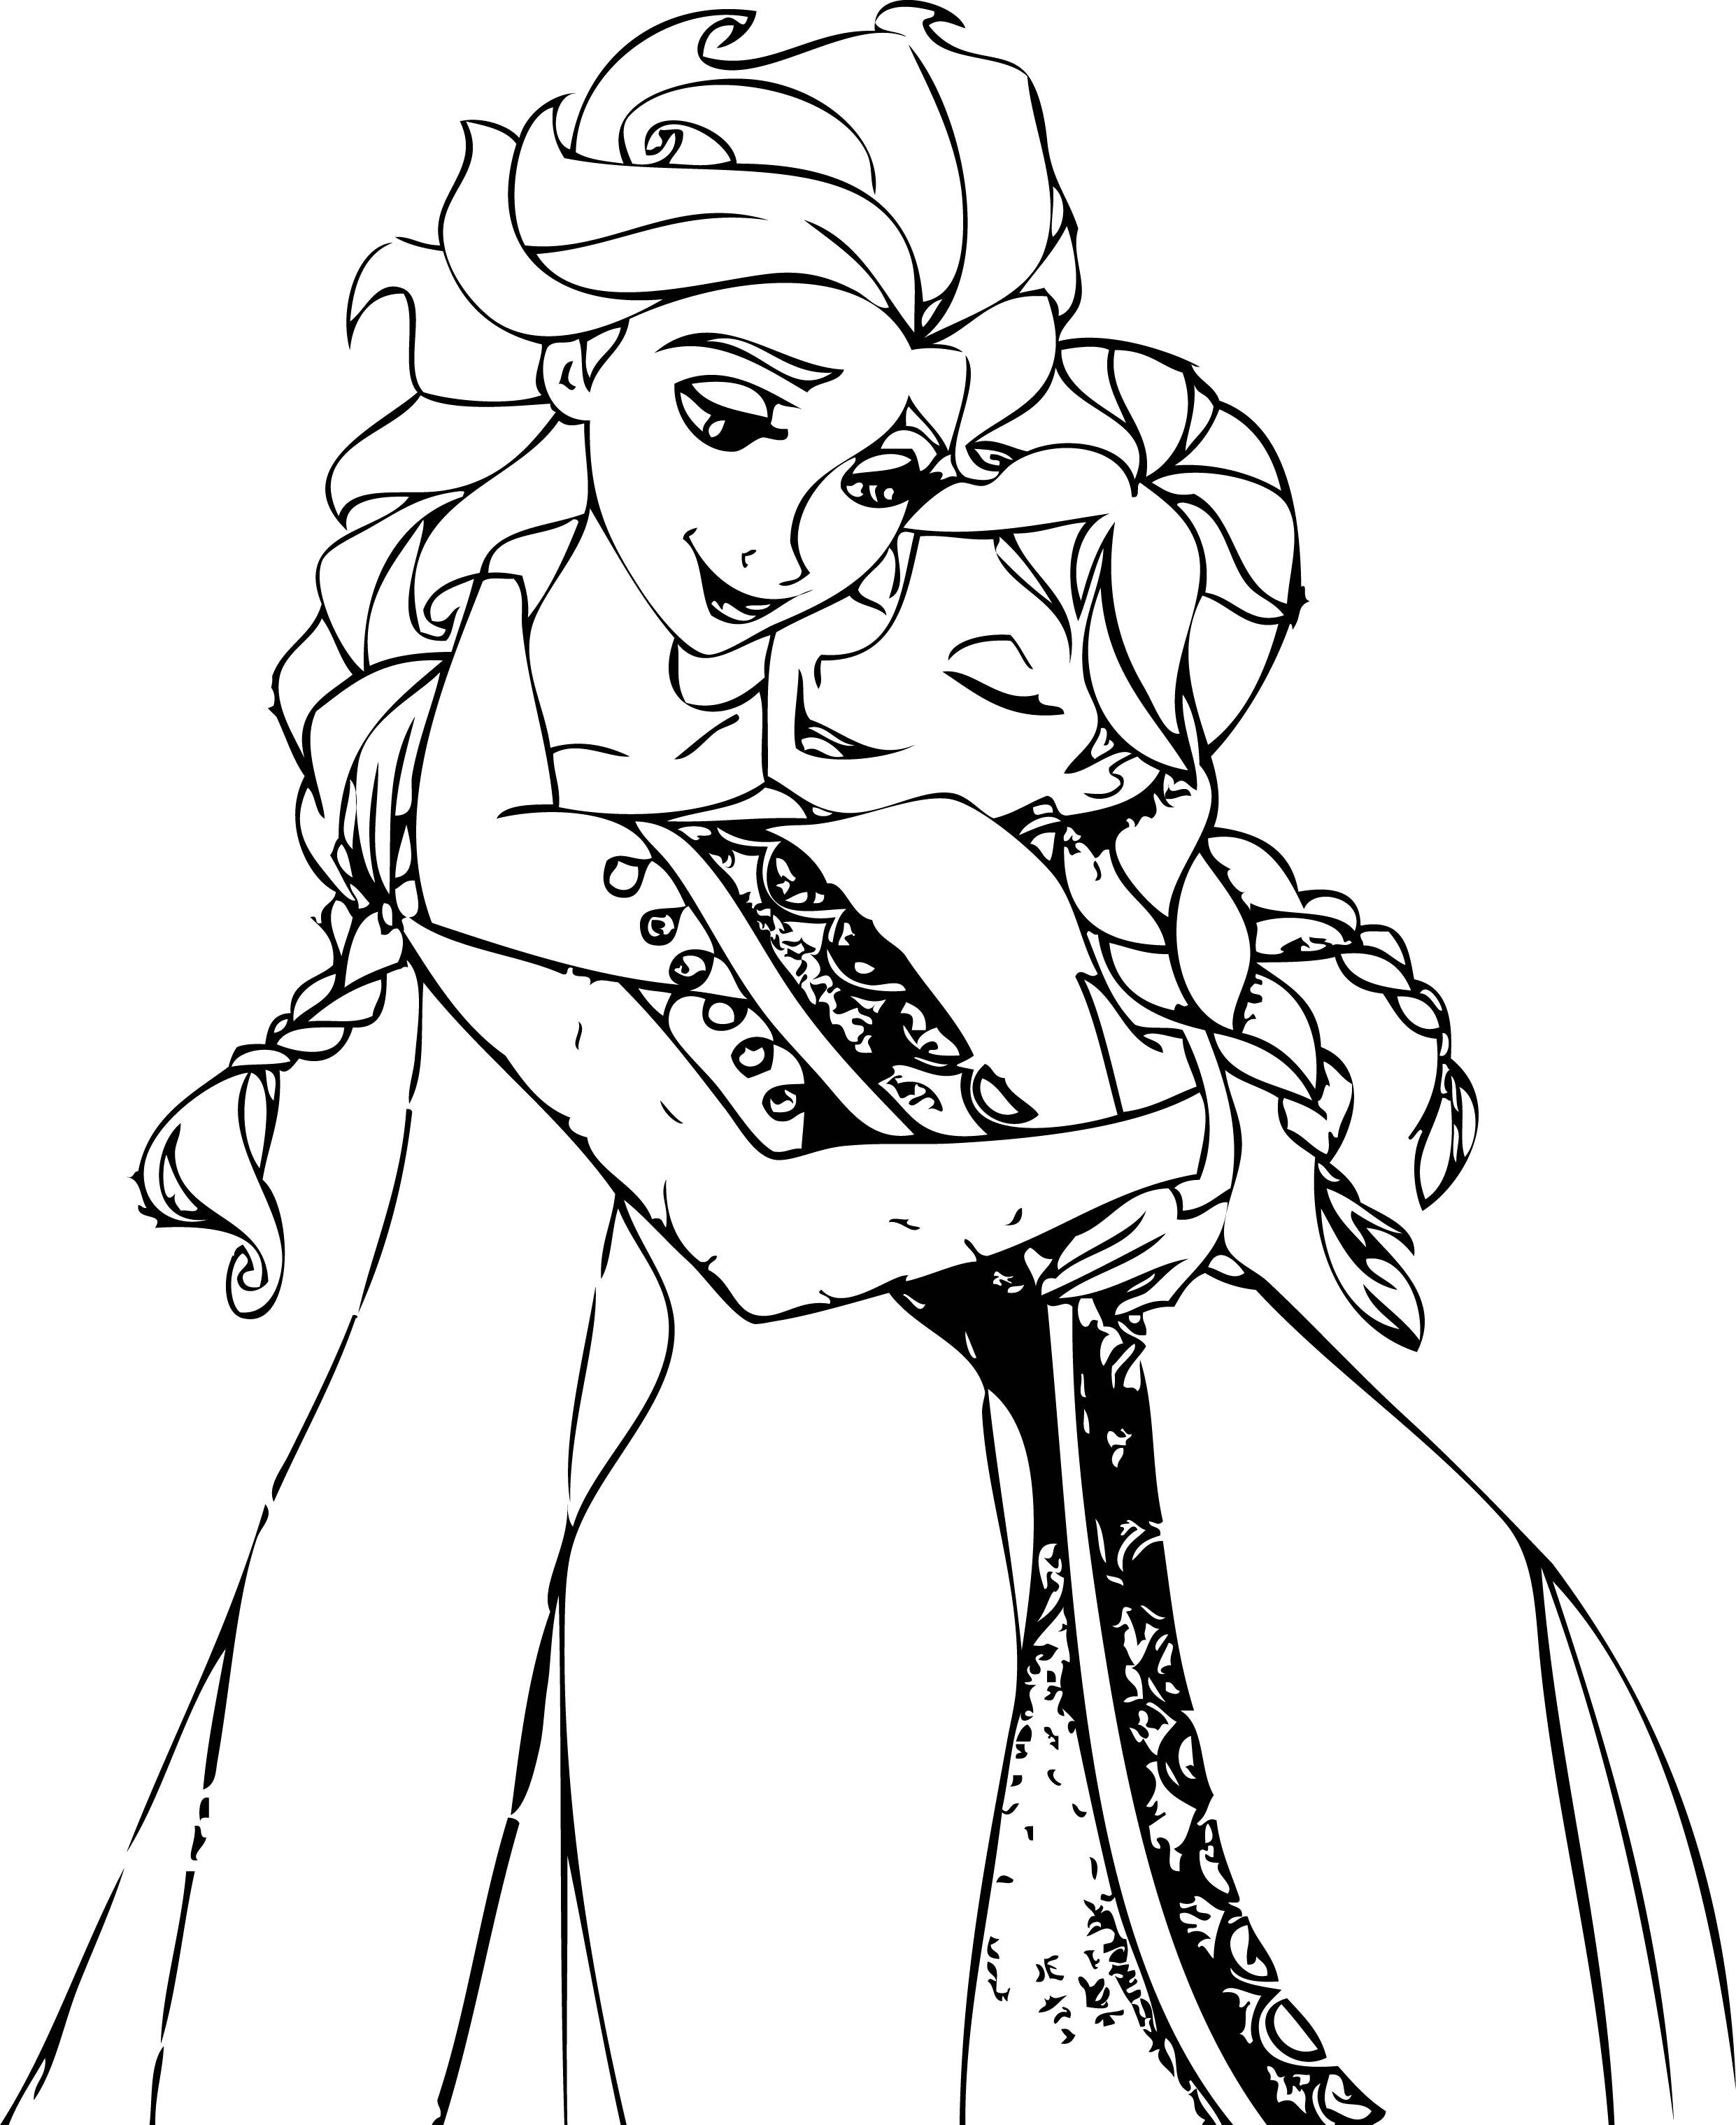 elsa and anna frozen coloring pages elsa and anna coloring pages coloring home pages elsa coloring frozen anna and